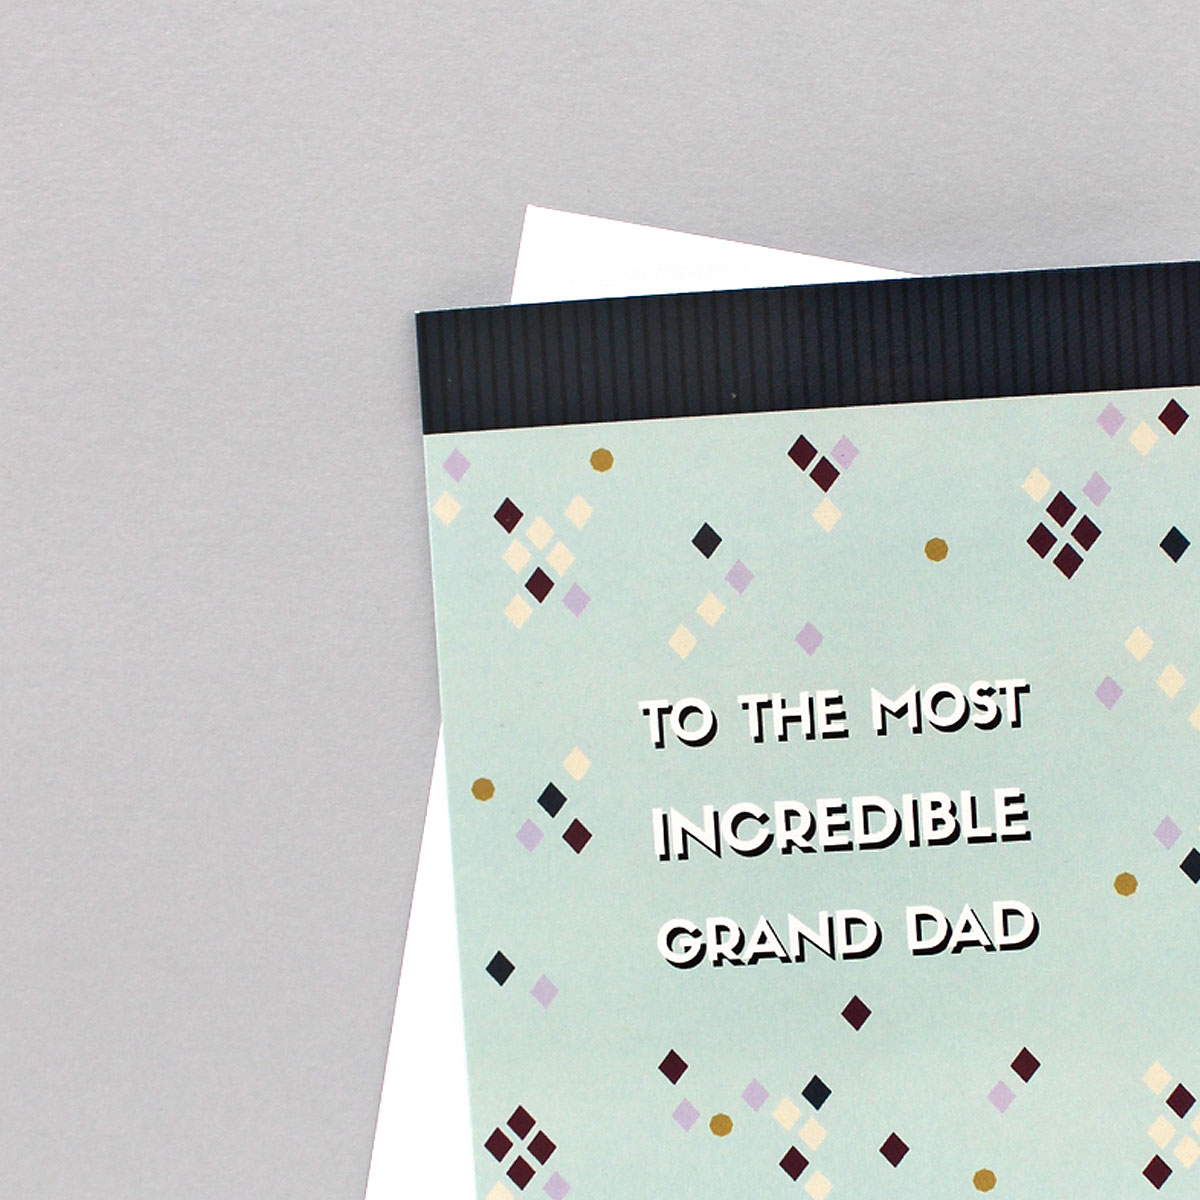 Grand father greeting card for grandparents creative middle card for grandparents birthday card for grand father shop greeting cards online india bookmarktalkfo Images